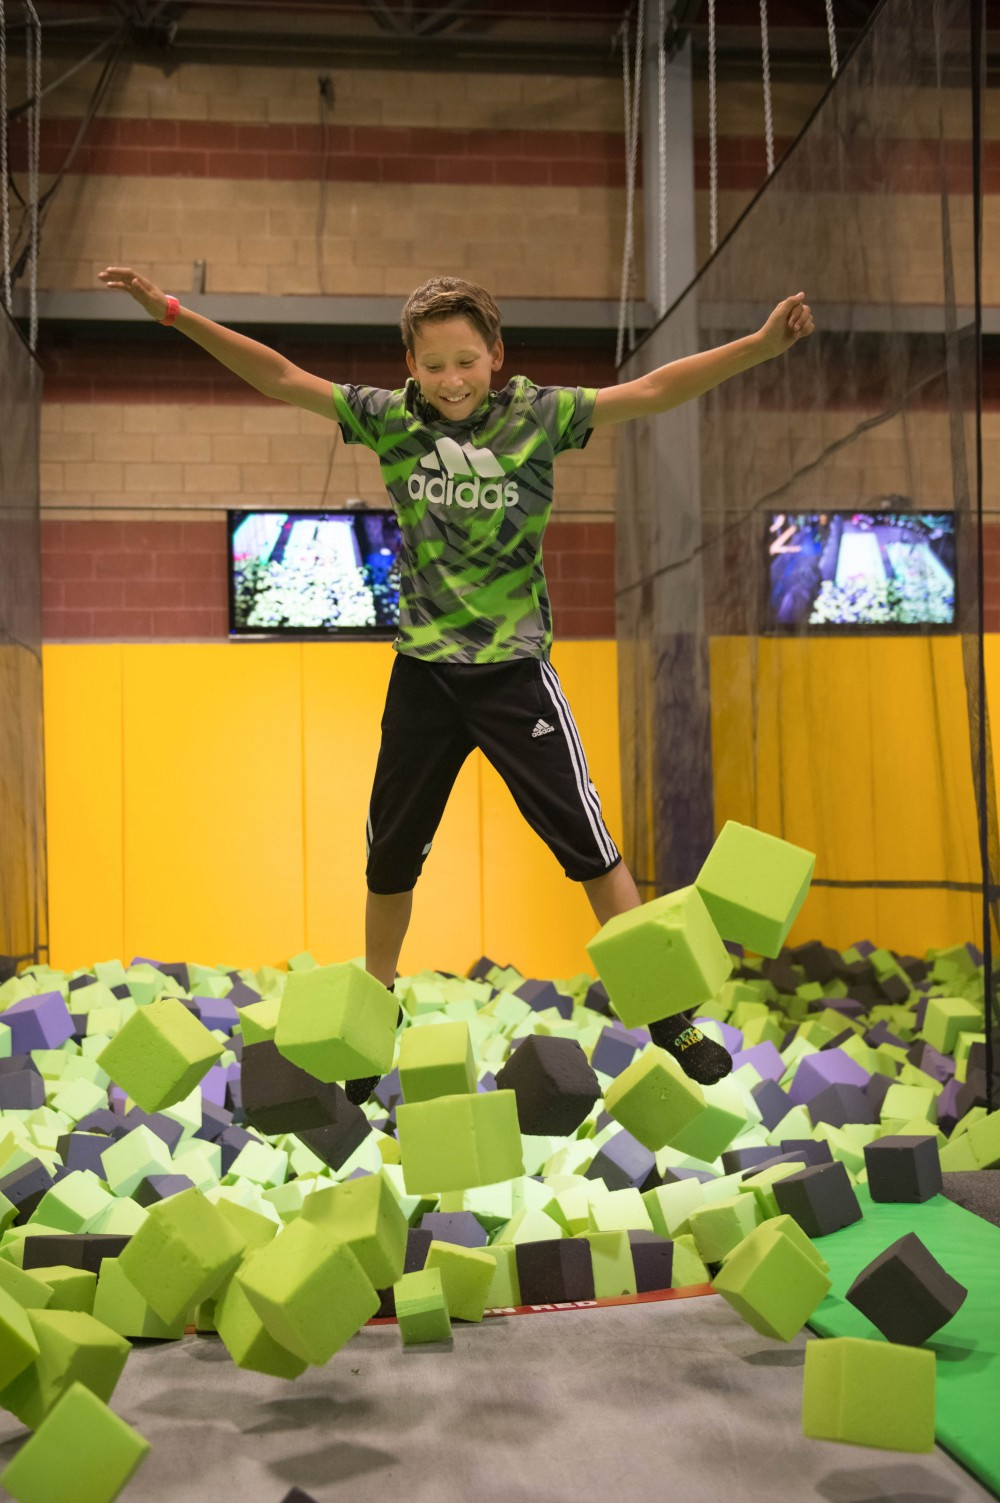 jumping in the foam pit